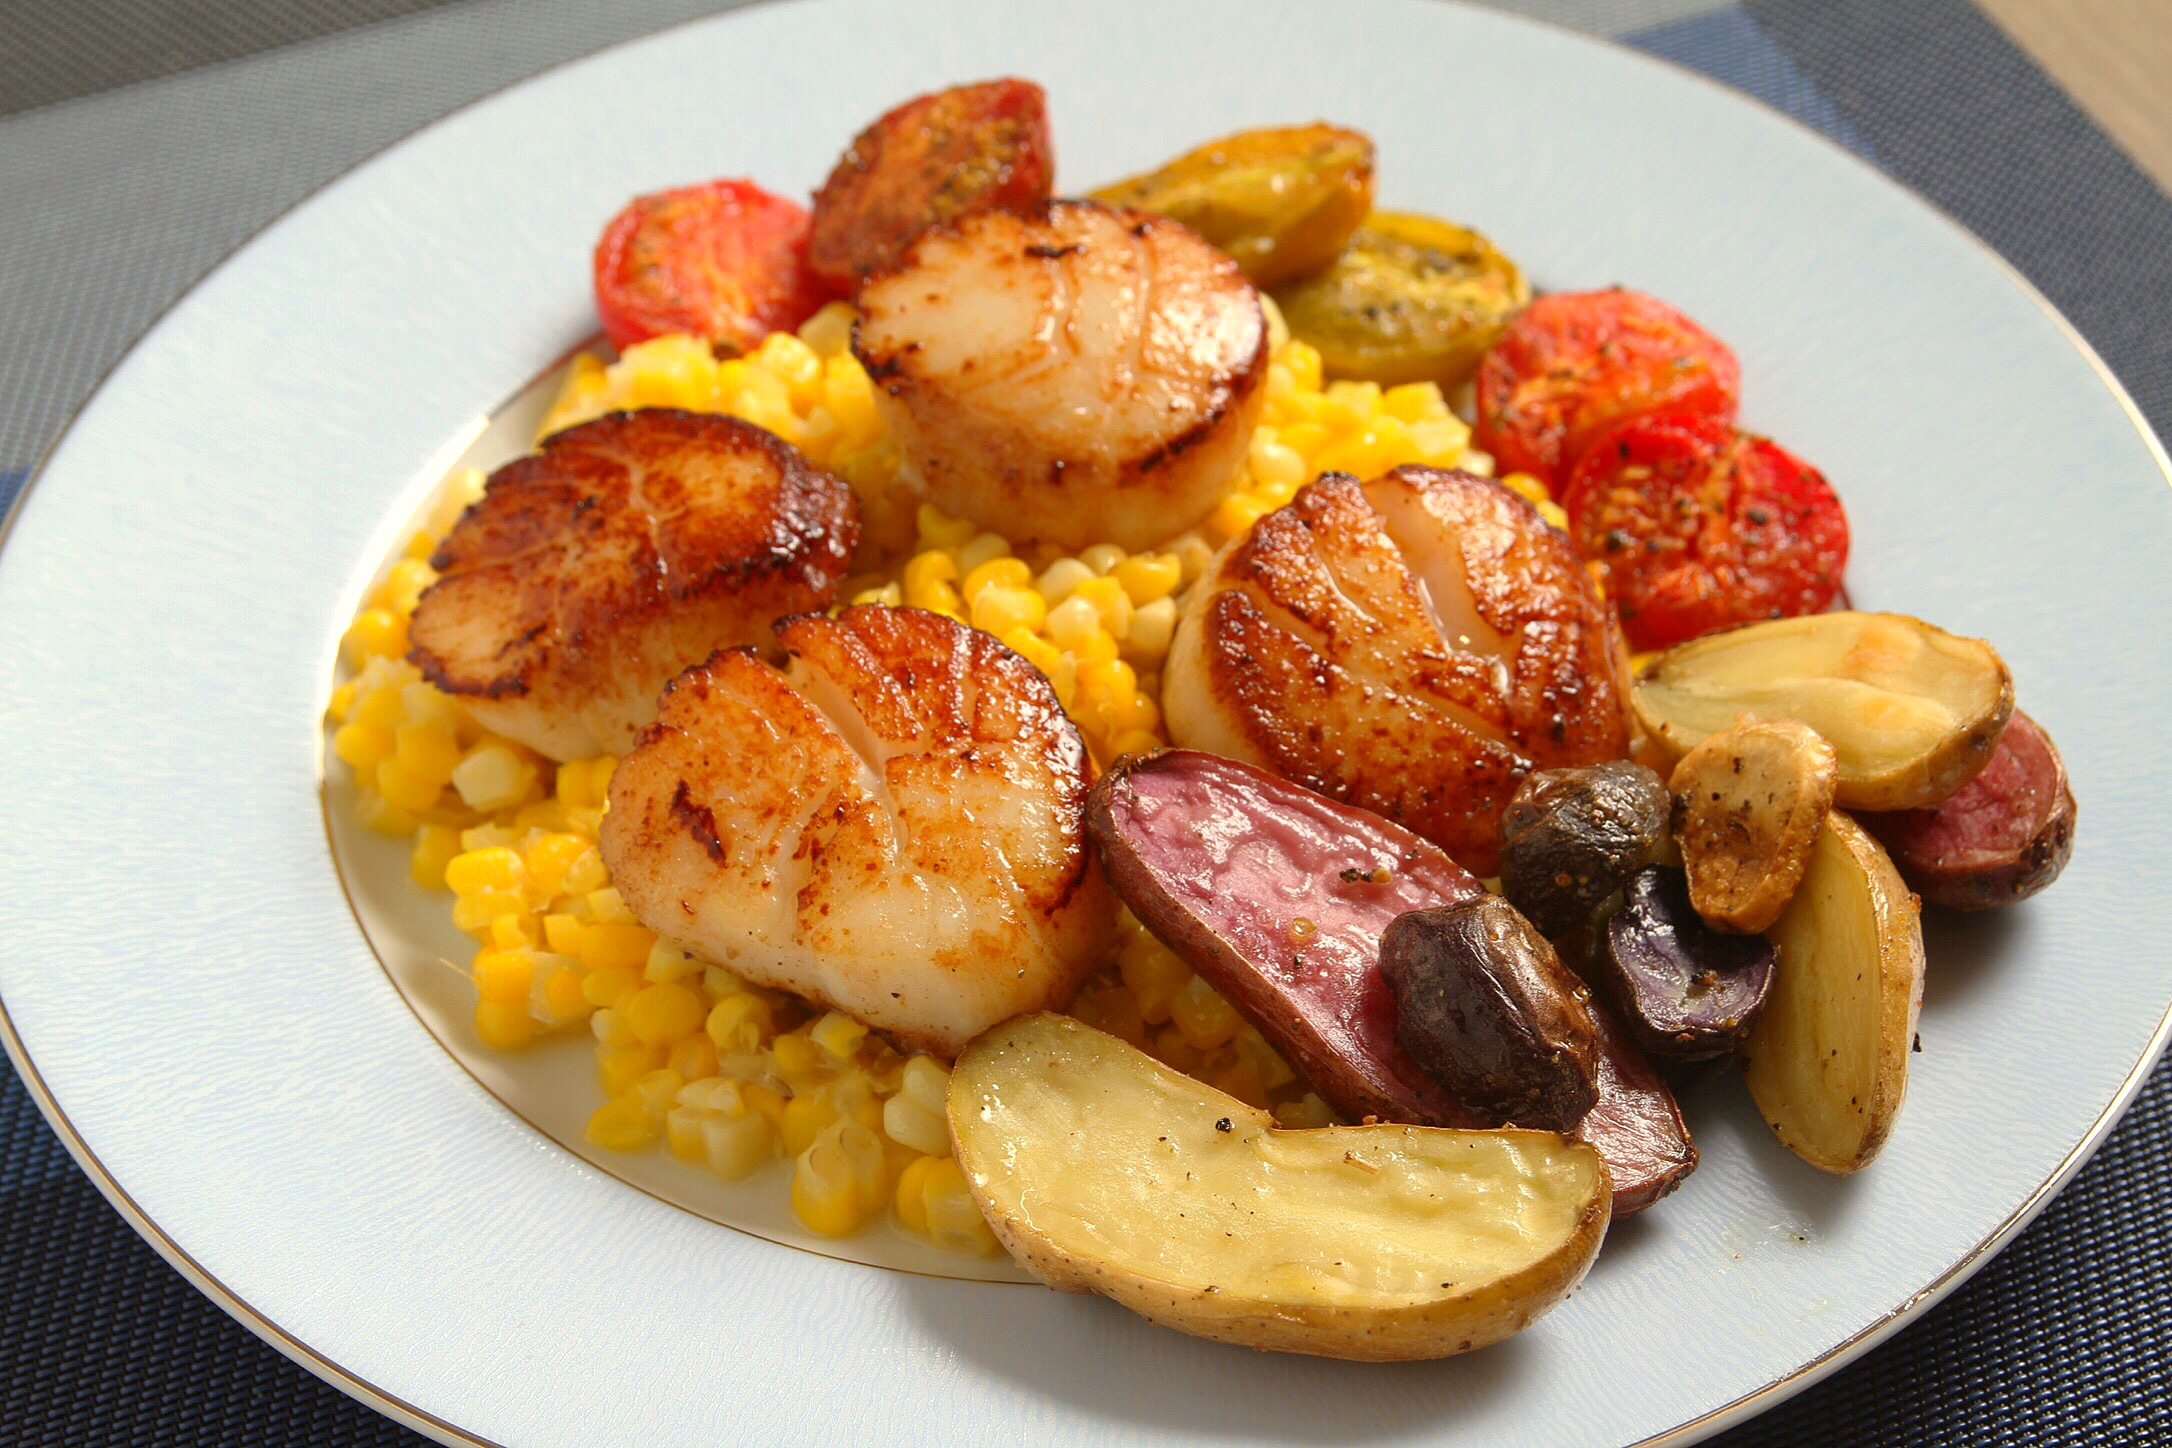 Seared scallops with fingerling potatoes, corn, and roasted tomatoes.